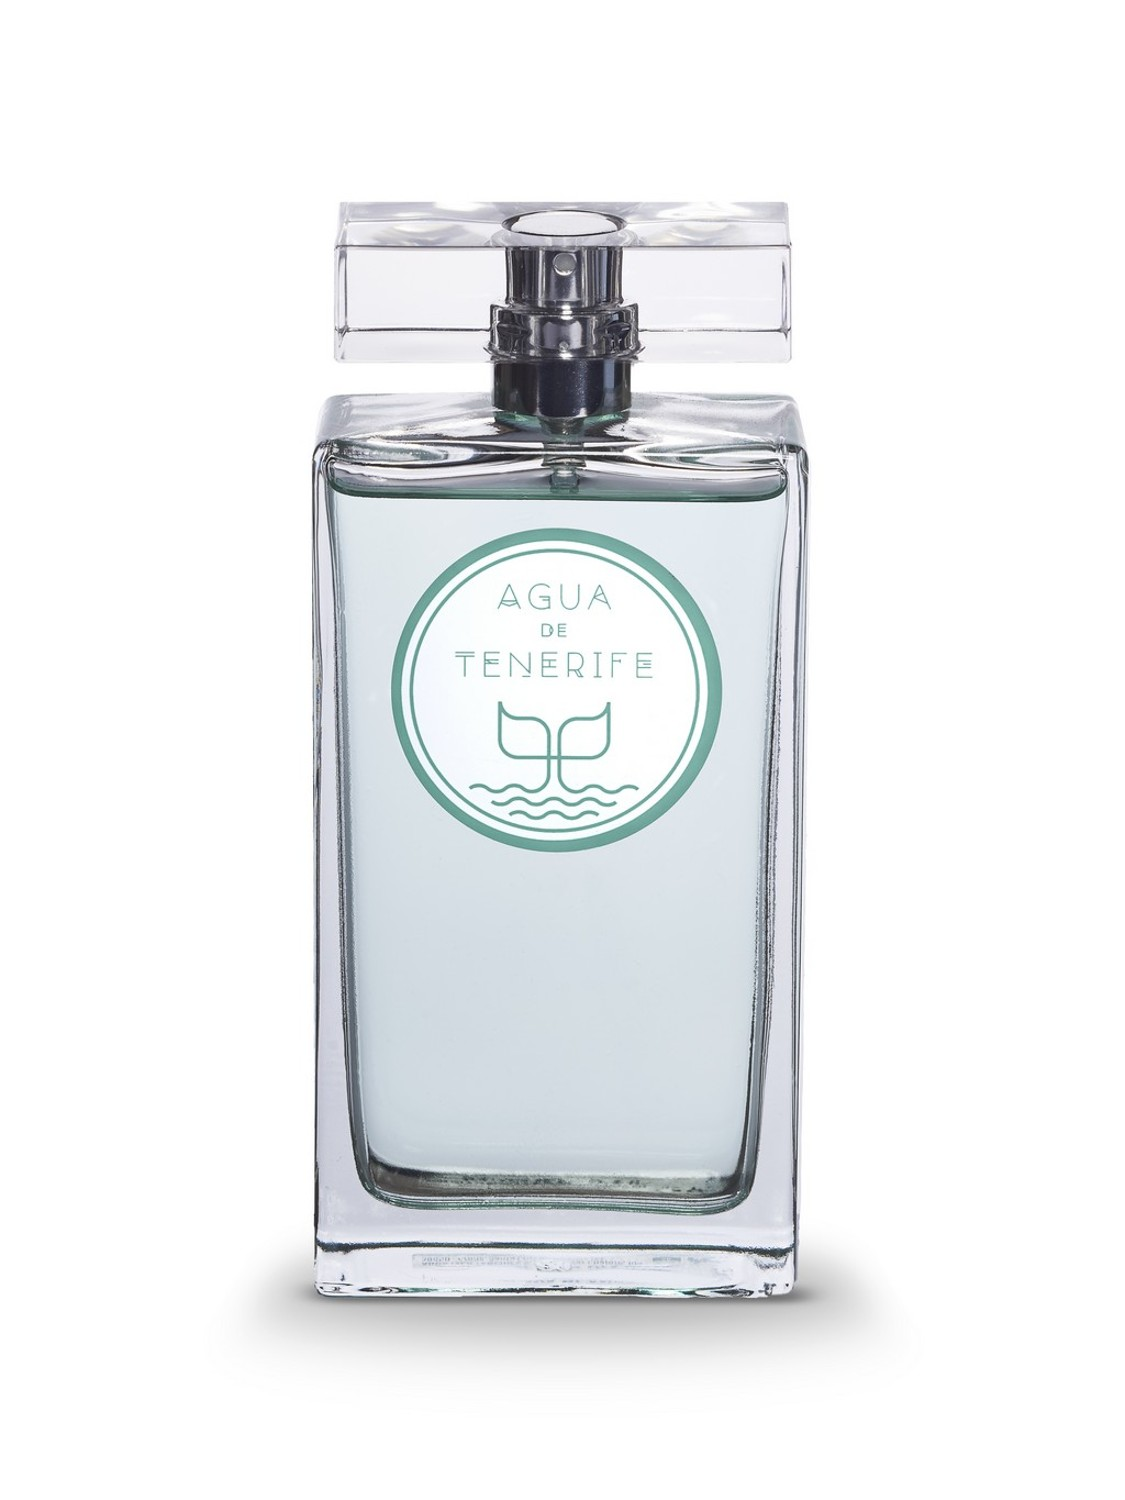 shop Agua de Tenerife  LAS FRAGANCIAS DE LA ISLA: Playa Blanca Eau de Parfum 100 ml.